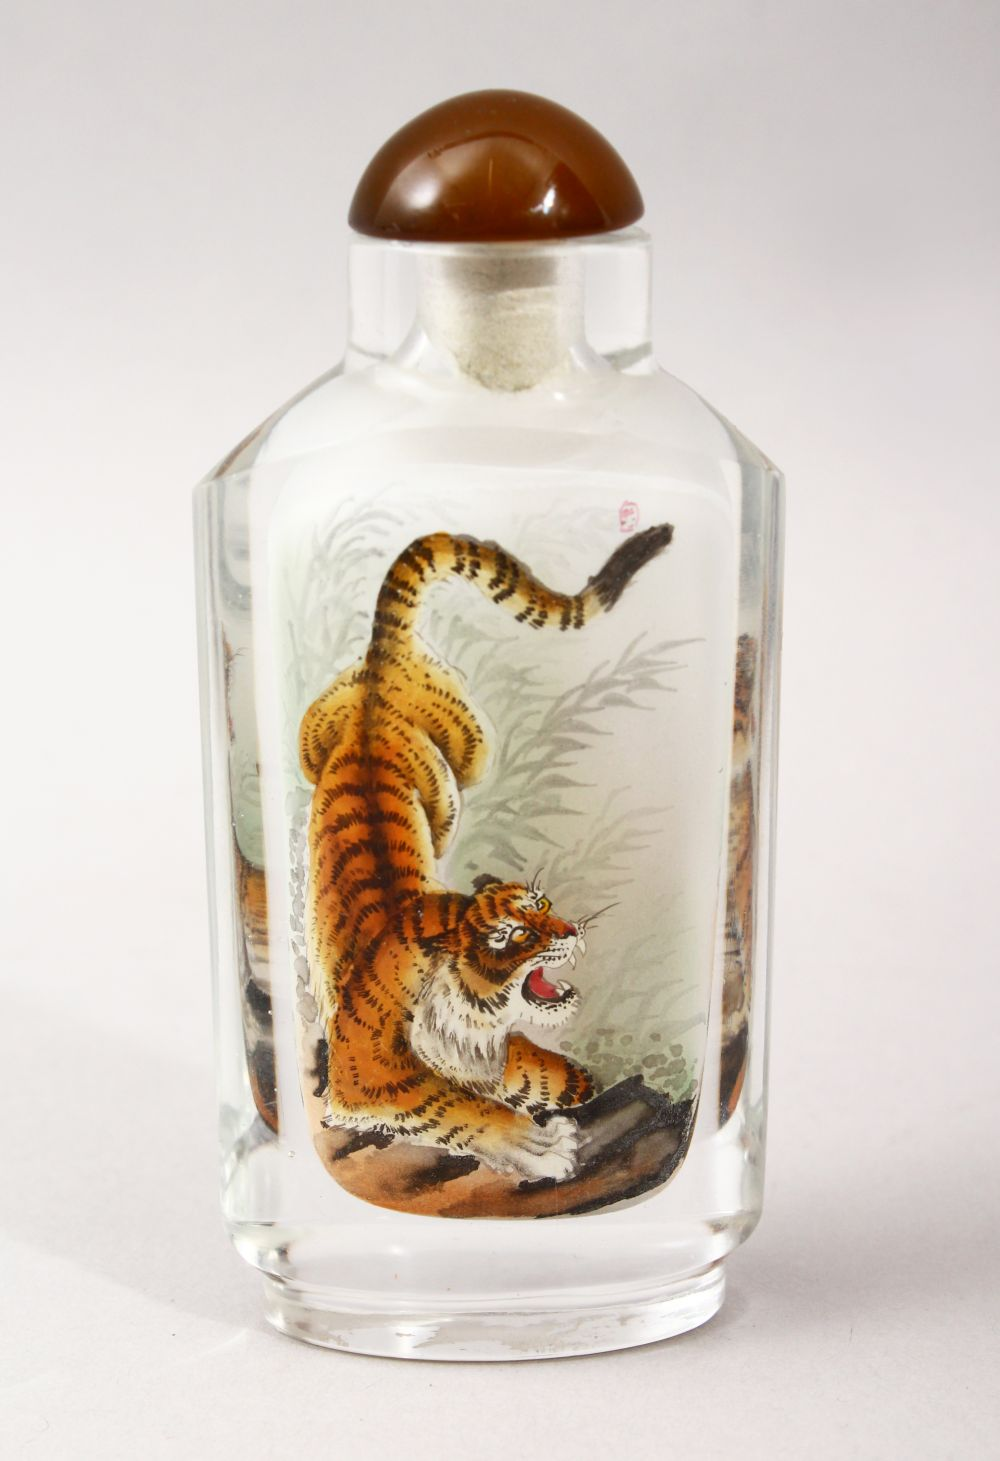 A GOOD 19TH / 20TH CENTURY CHINESE REVERSE PAINTED GLASS SNUFF BOTTLE, depicting scenes of a